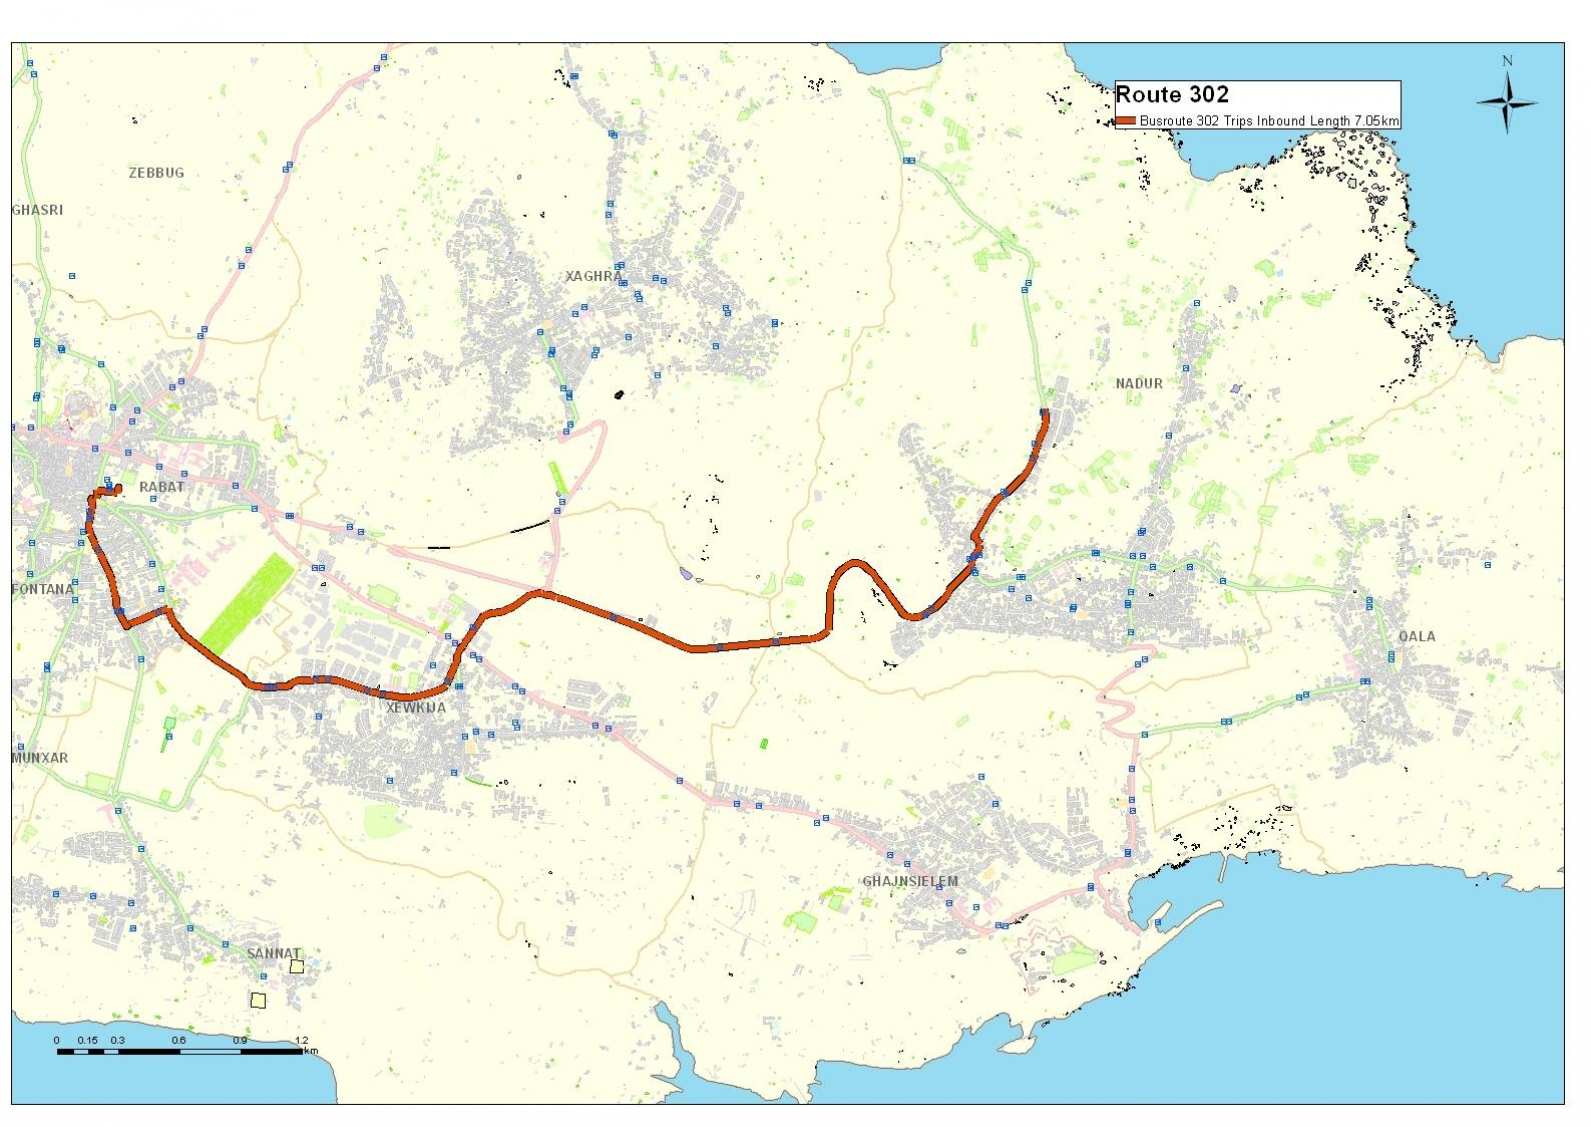 Land-current-network-routes-and-schedules-Gozo-5